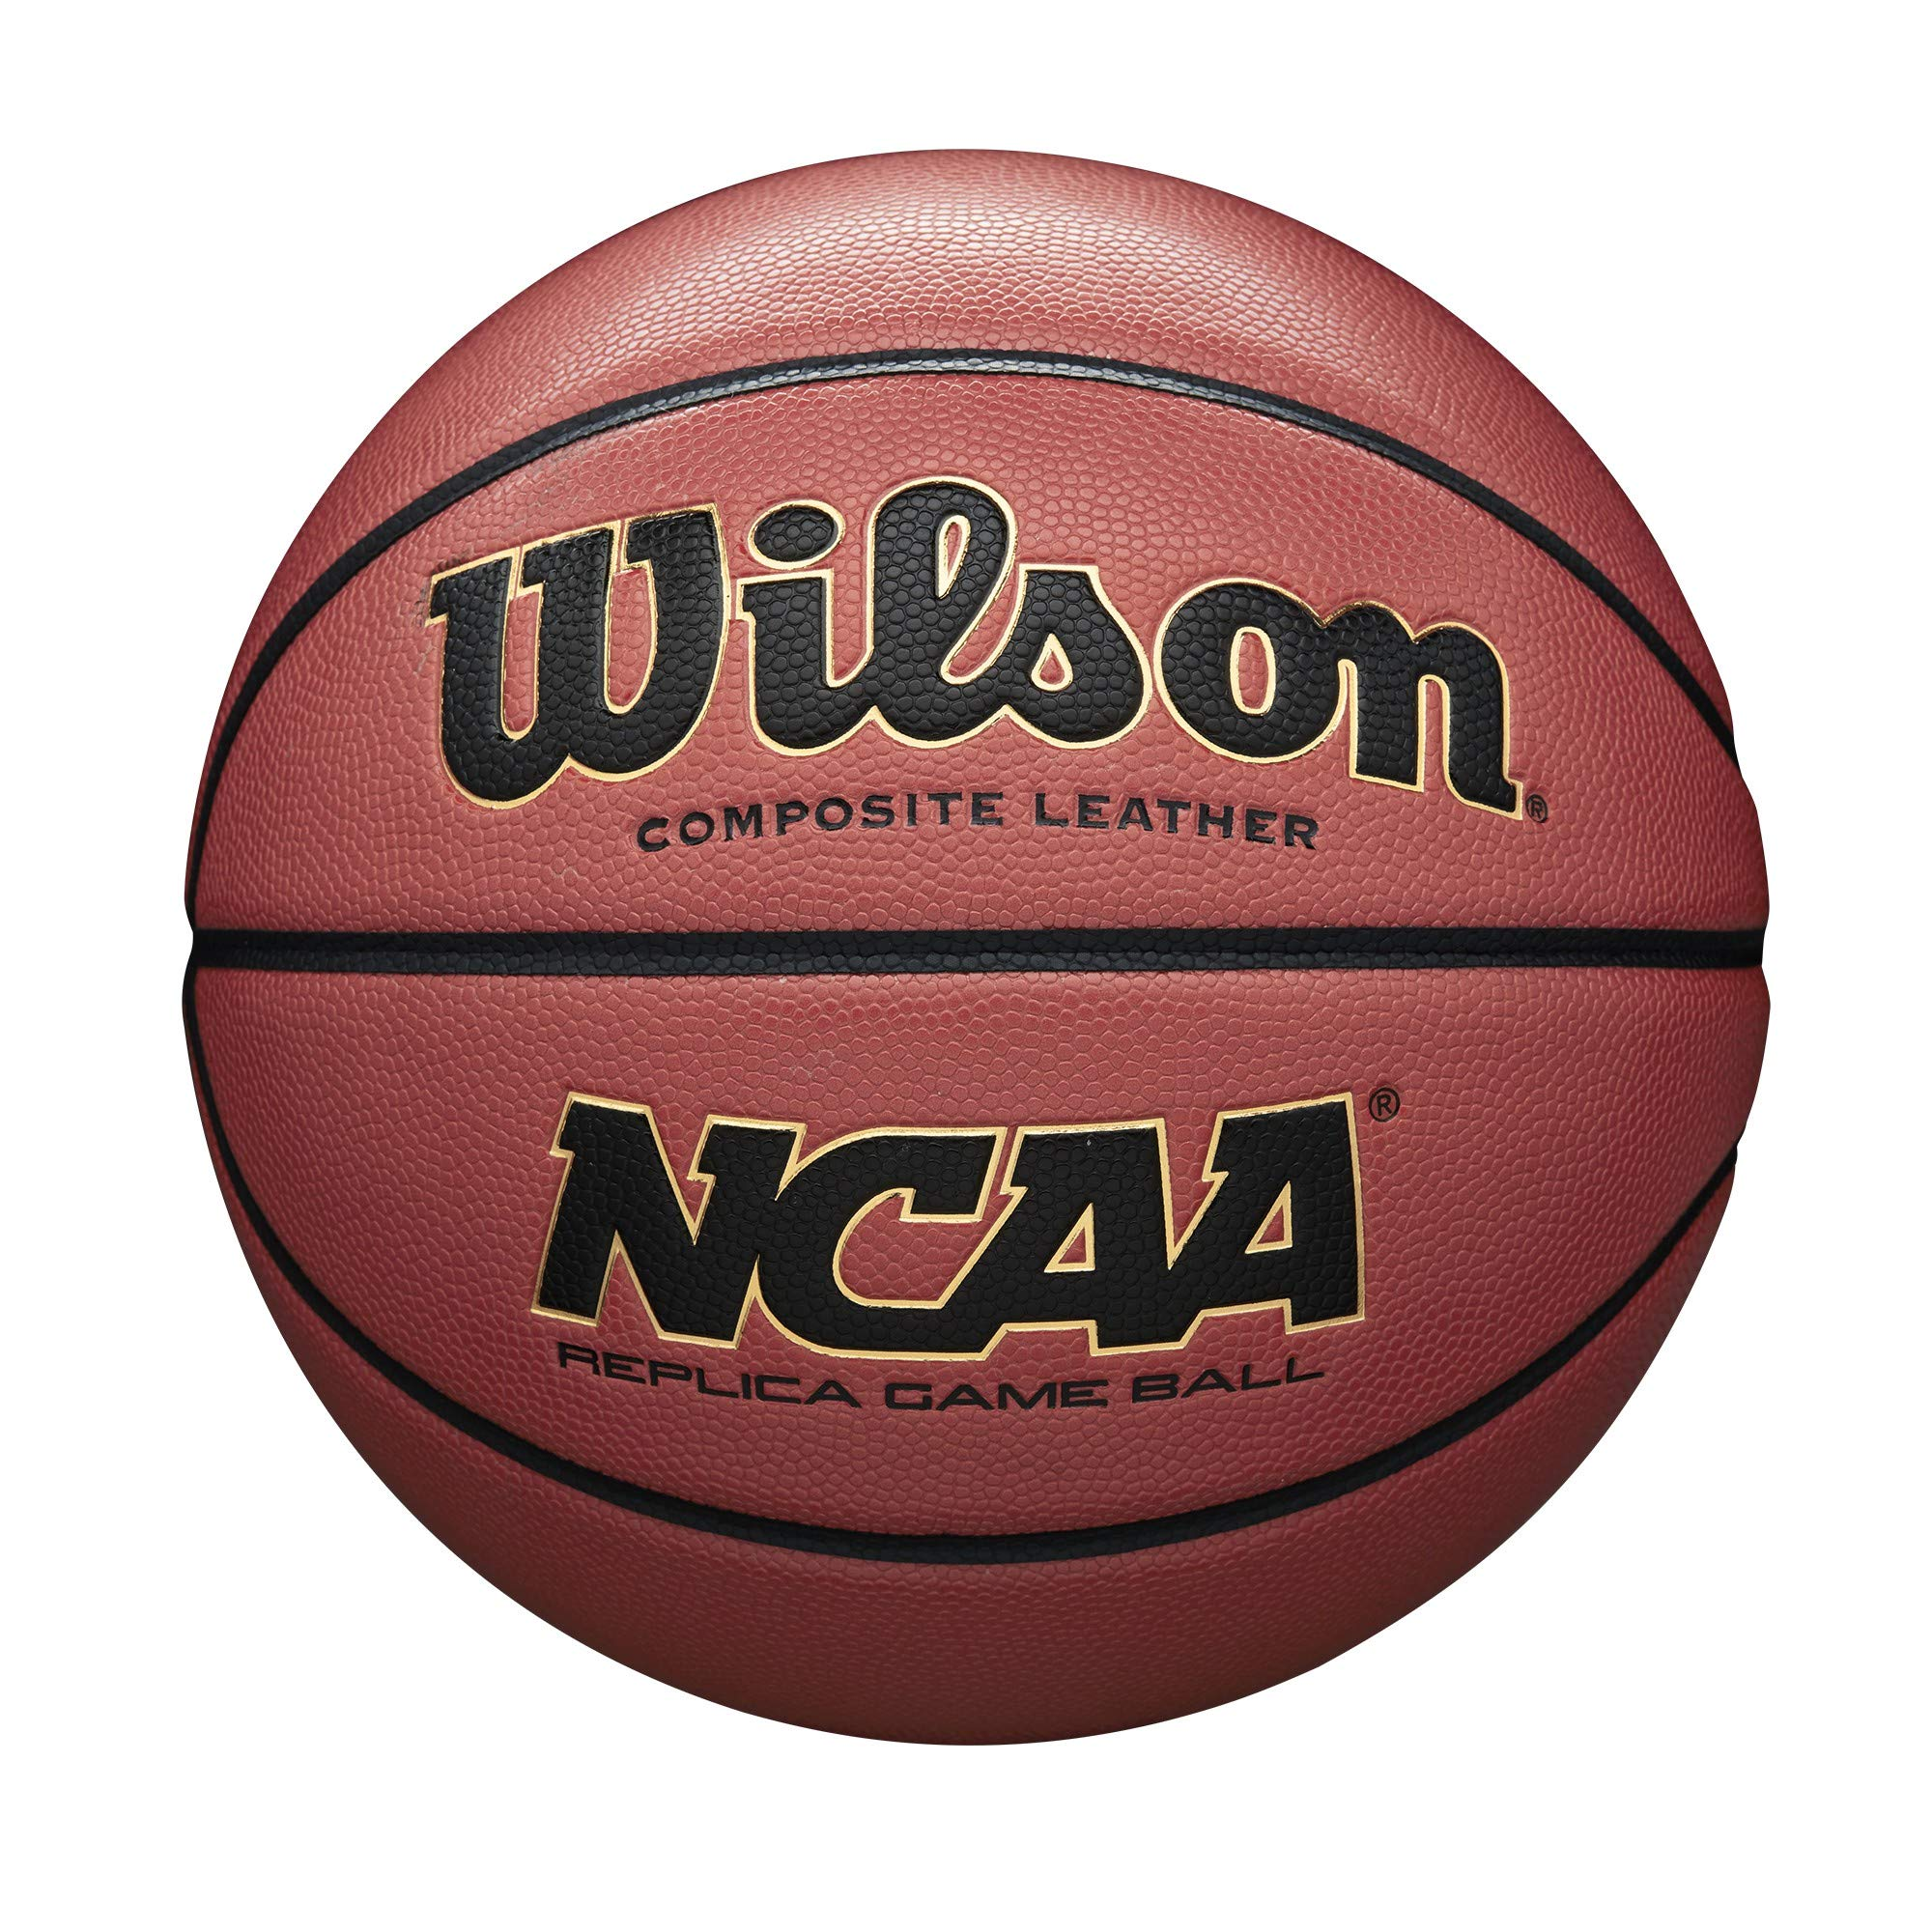 Wilson NCAA Replica Basketball 29 5 Inch